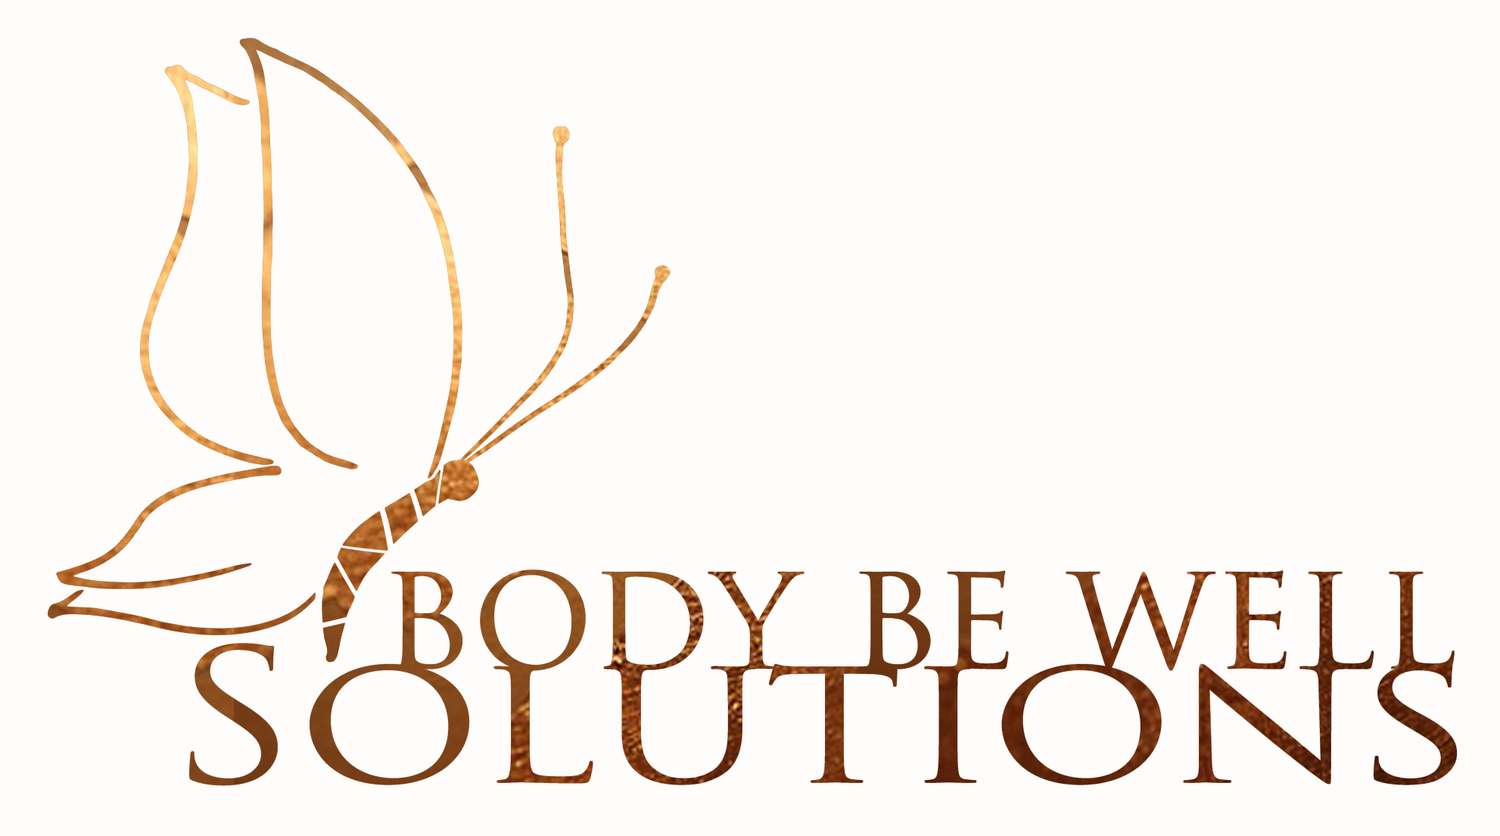 Body Be Well Solutions